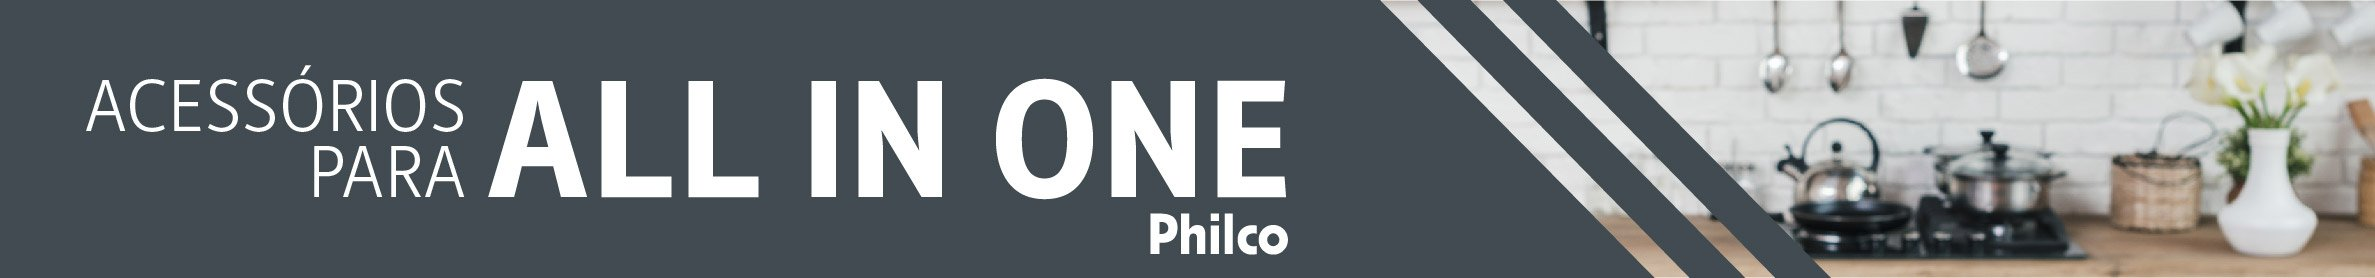 All in one - philco